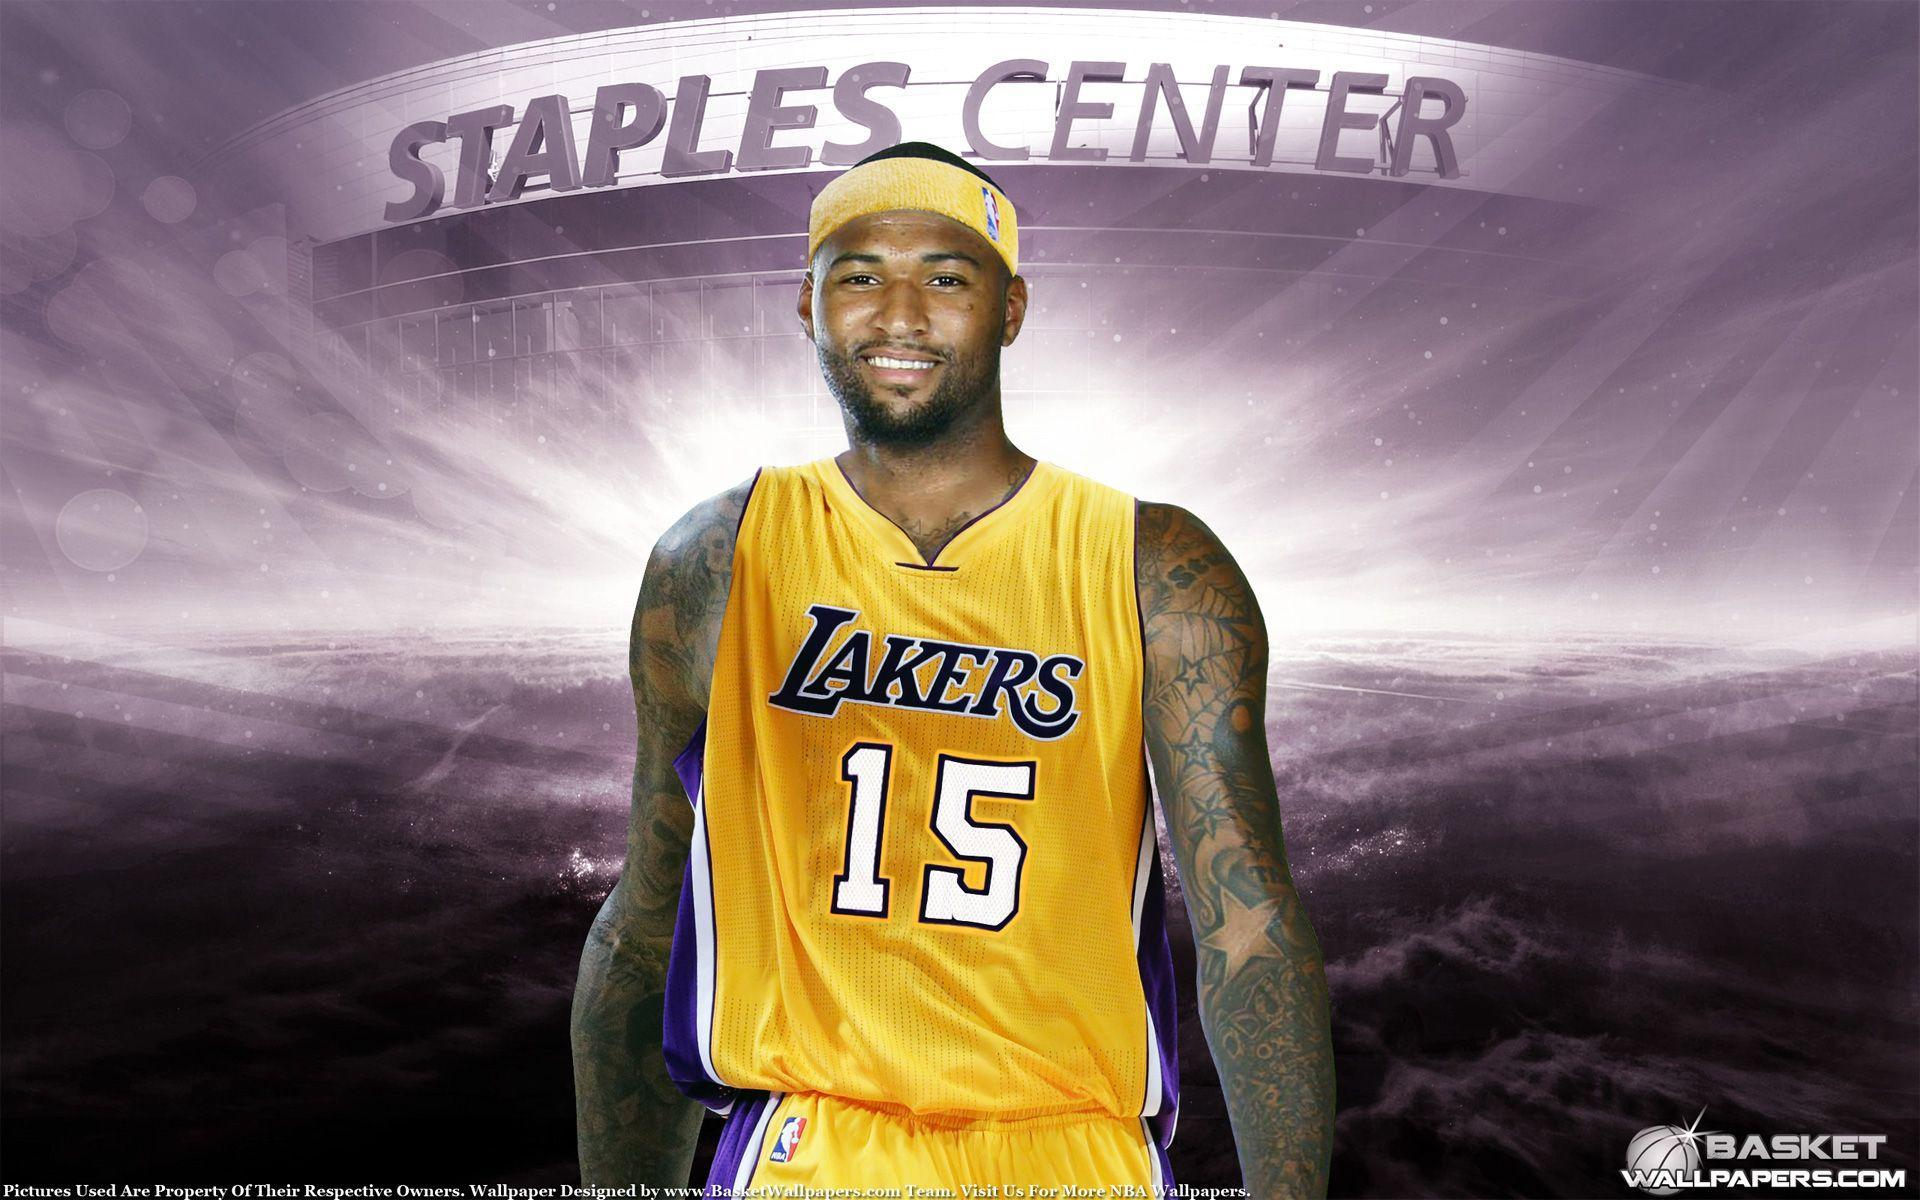 boogie cousins lakers jersey Off 58% - www.bashhguidelines.org